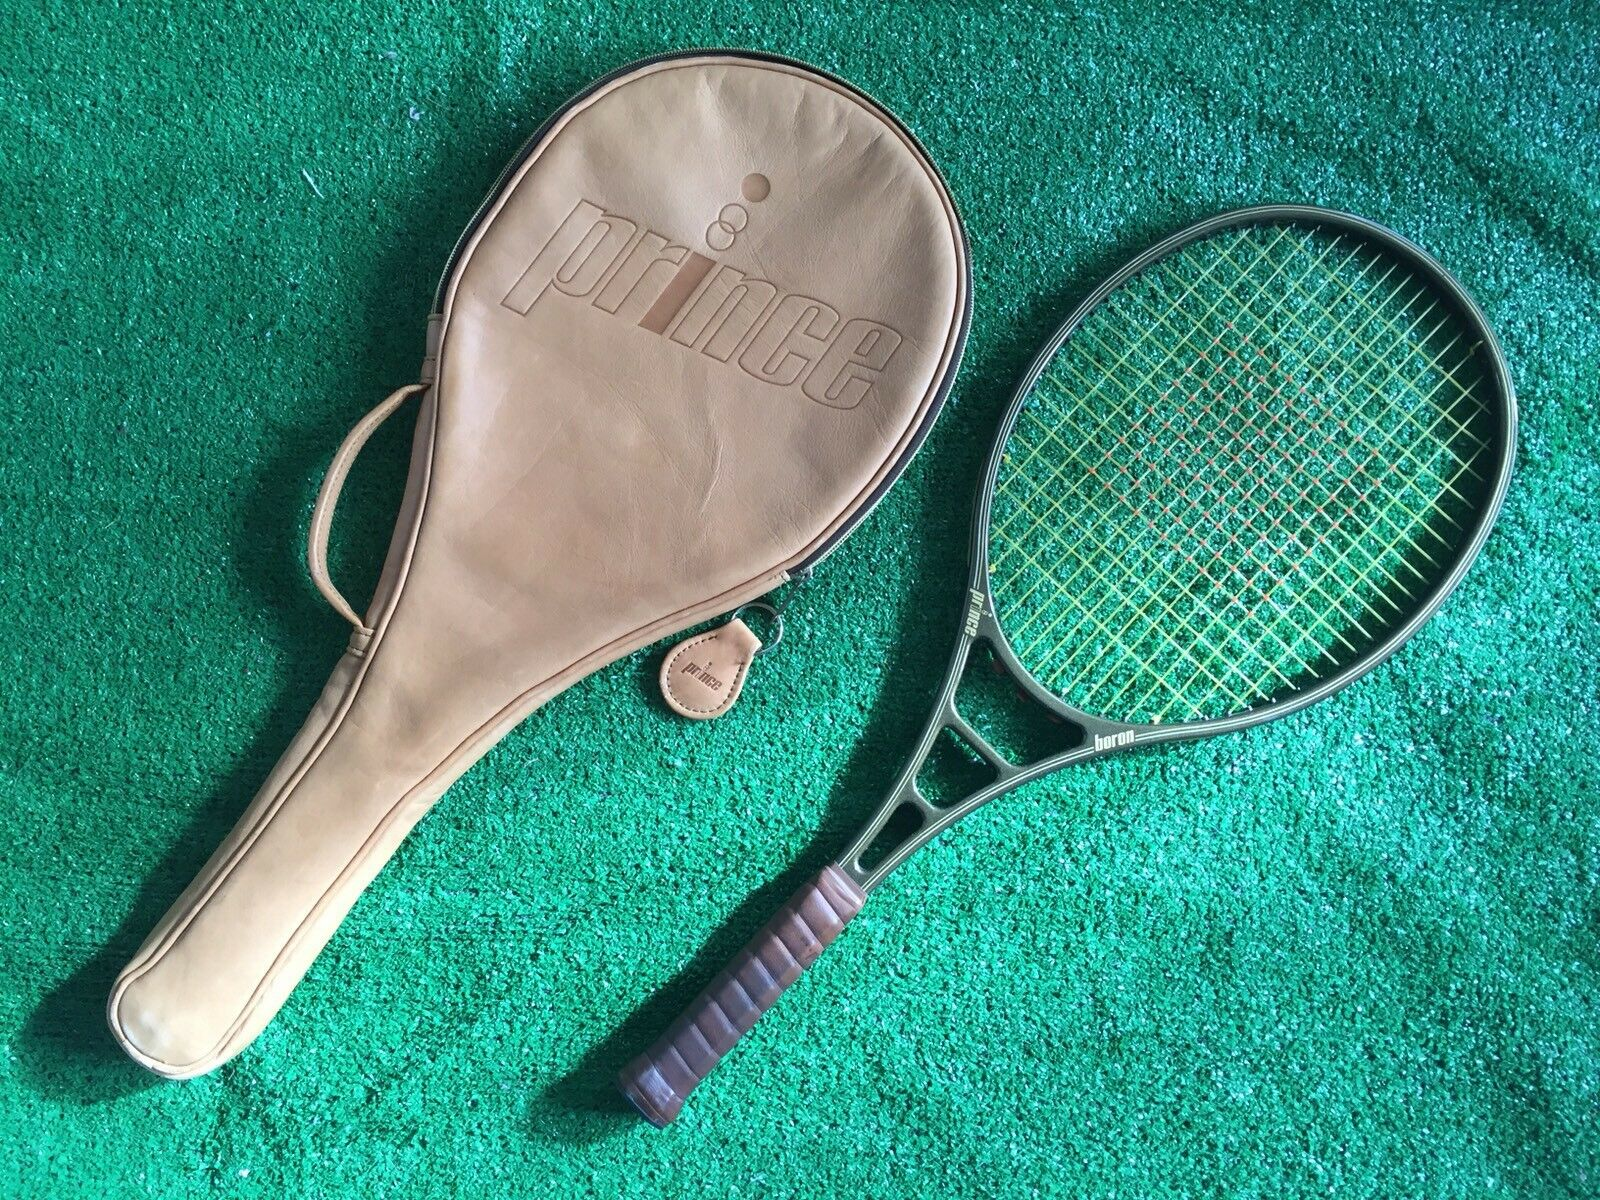 Prince Bgoldn Tennis Racquet 4 3 8 Used